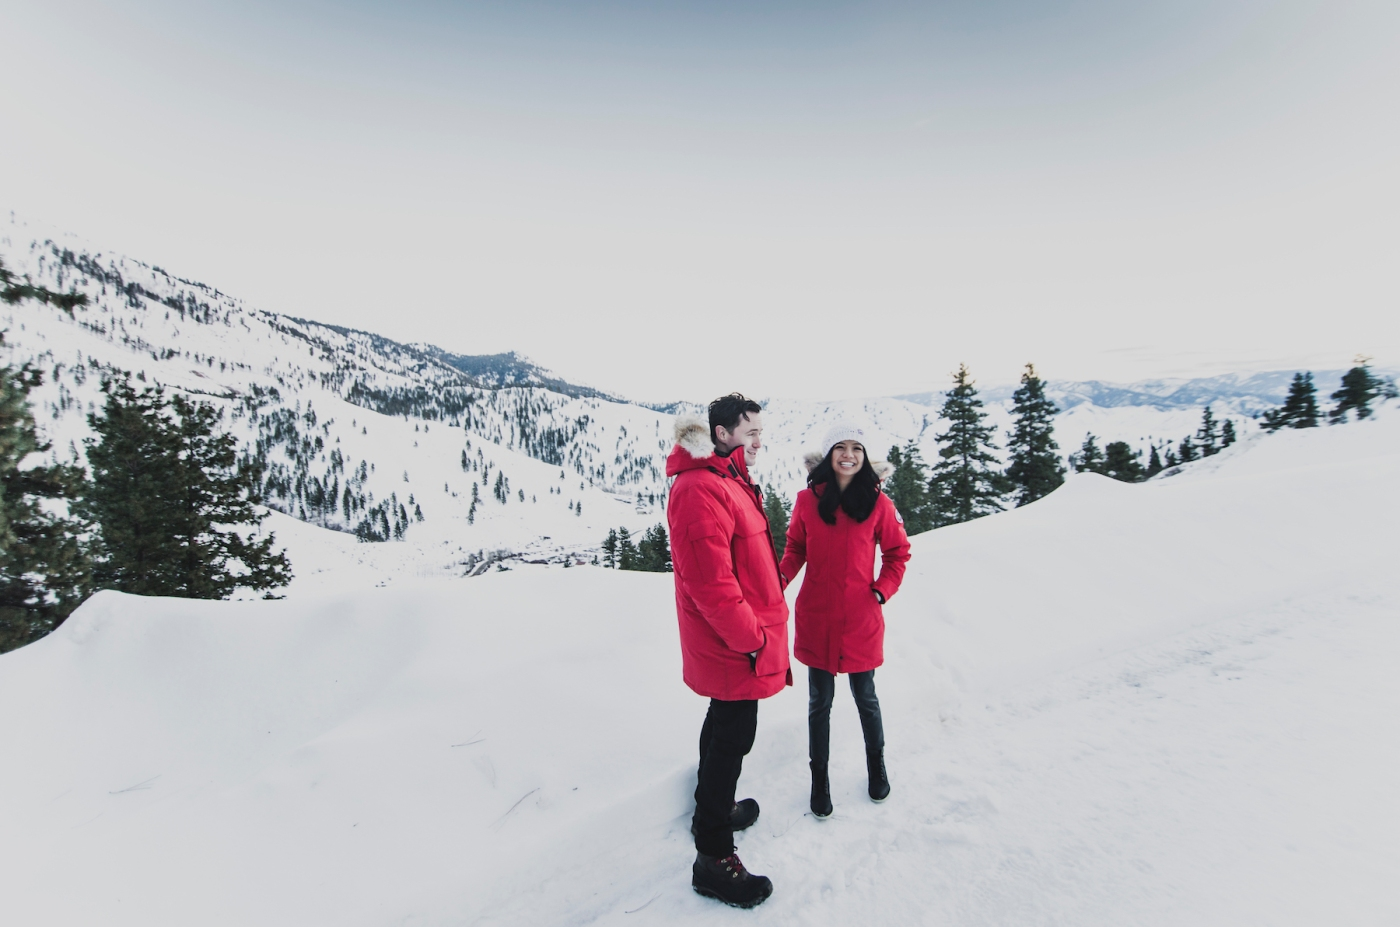 leavenworth_elopement_by_jane_speleers_photography_seattle_photographer_2017_winter_snow_joy_and_jason_rendezvous_ranch_cashmere_leavenworth_nahahum_canyon_all_rights_reserveddsc_0084